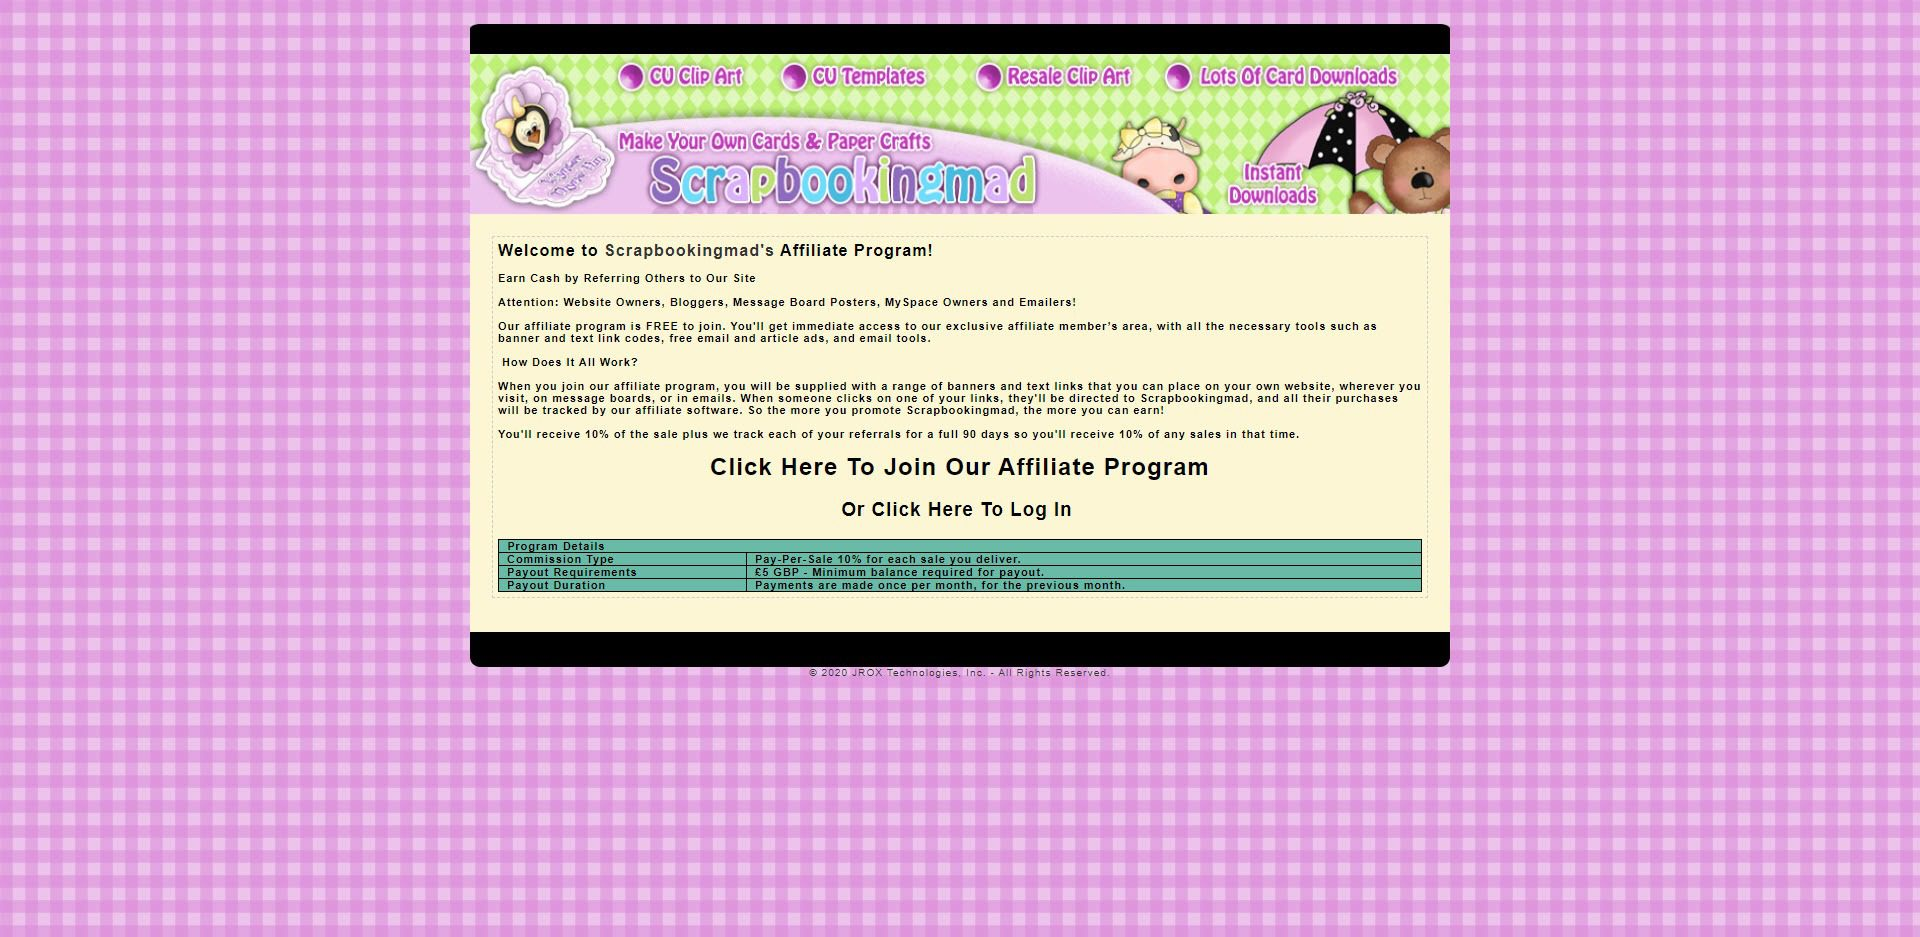 Scrapbooking Affiliate Programs - Scrapbooking mad affiliate